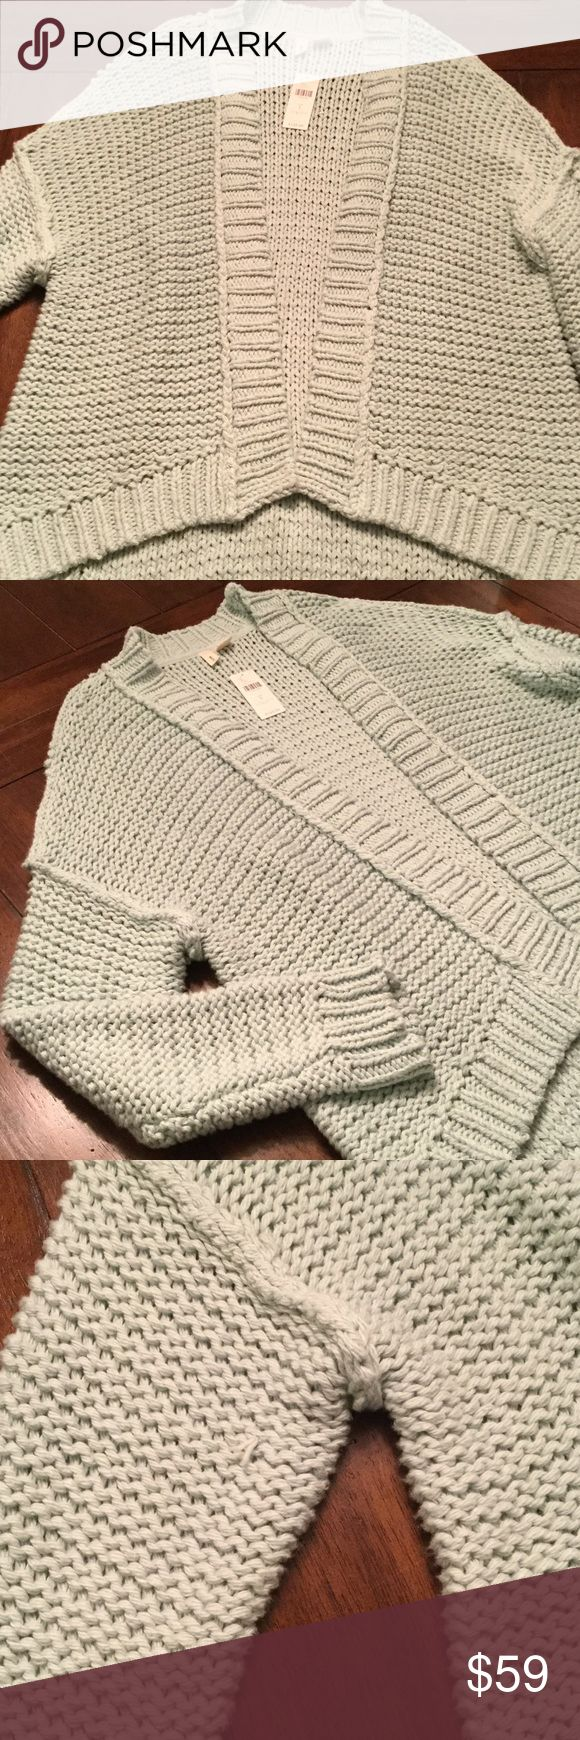 Anthropologie Cardigan This cardigan is perfect for cool spring night bon fires 🔥 Mint green color that is more like stock photos than my photos. So soft and cozy! Could be worn over sized for small or medium ladies also. Please note there are some rough ends as this is a knitted sweater. Anthropologie Sweaters Cardigans